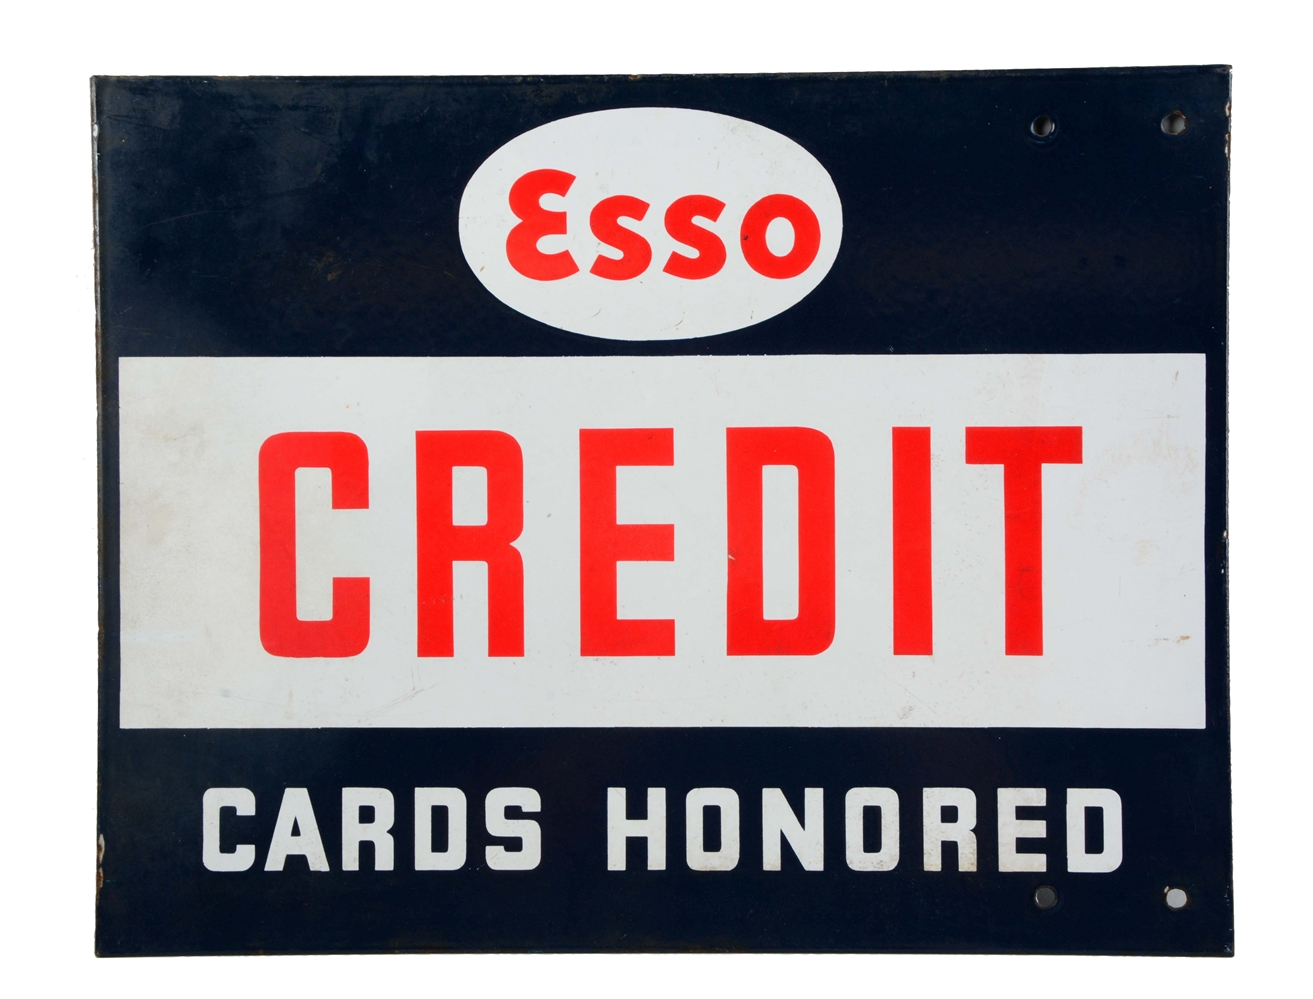 Esso Credit Cards Honored Porcelain Sign.